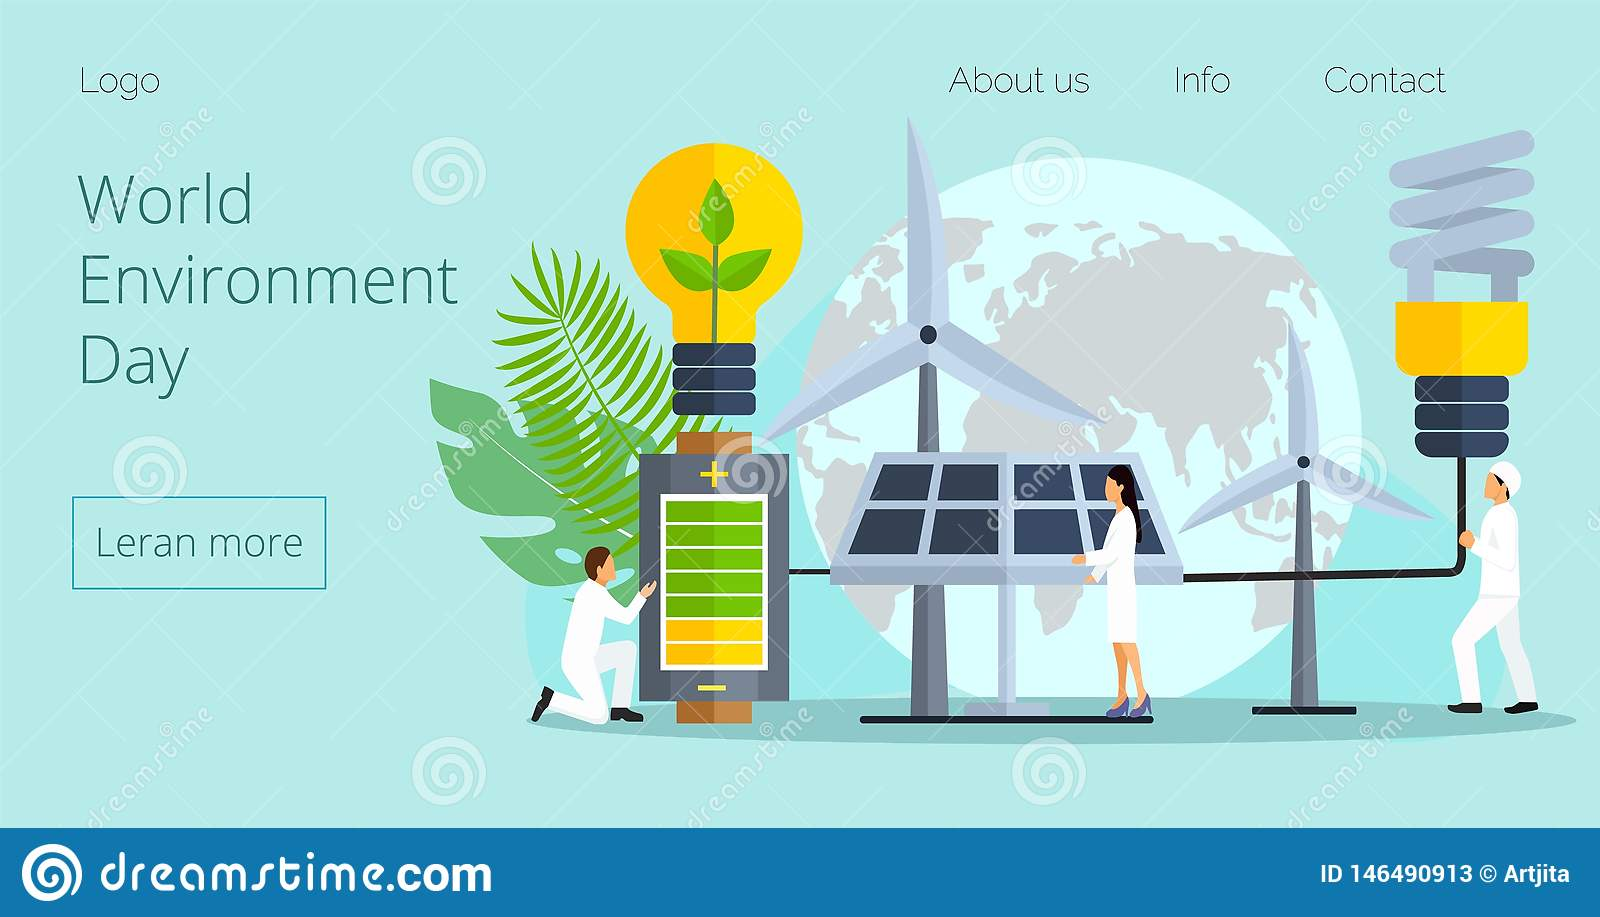 Concept of save the planet, save energy